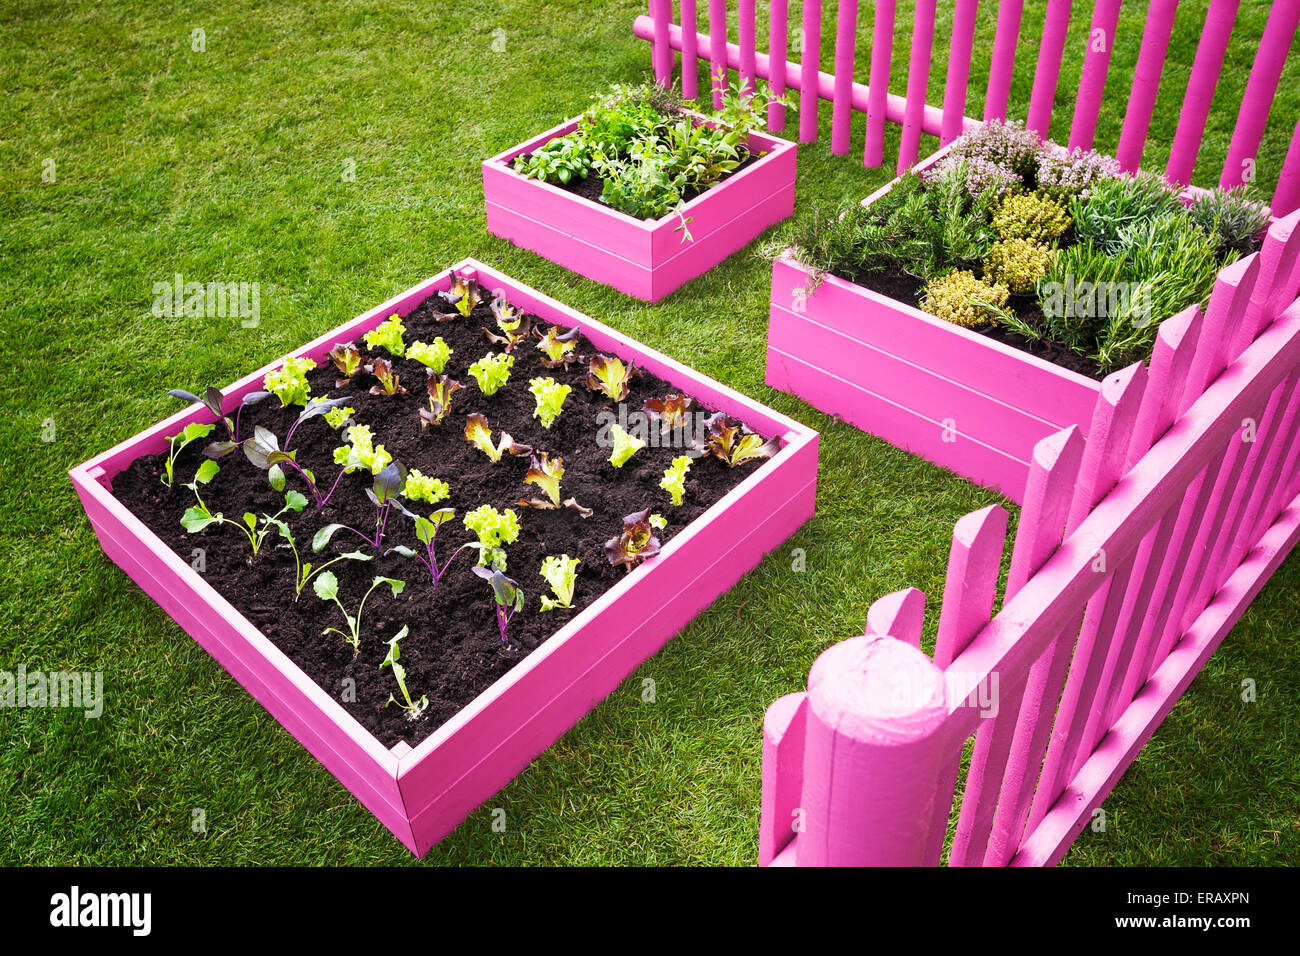 Small Herb Garden Pink Raised Beds With Herbs And Vegetables